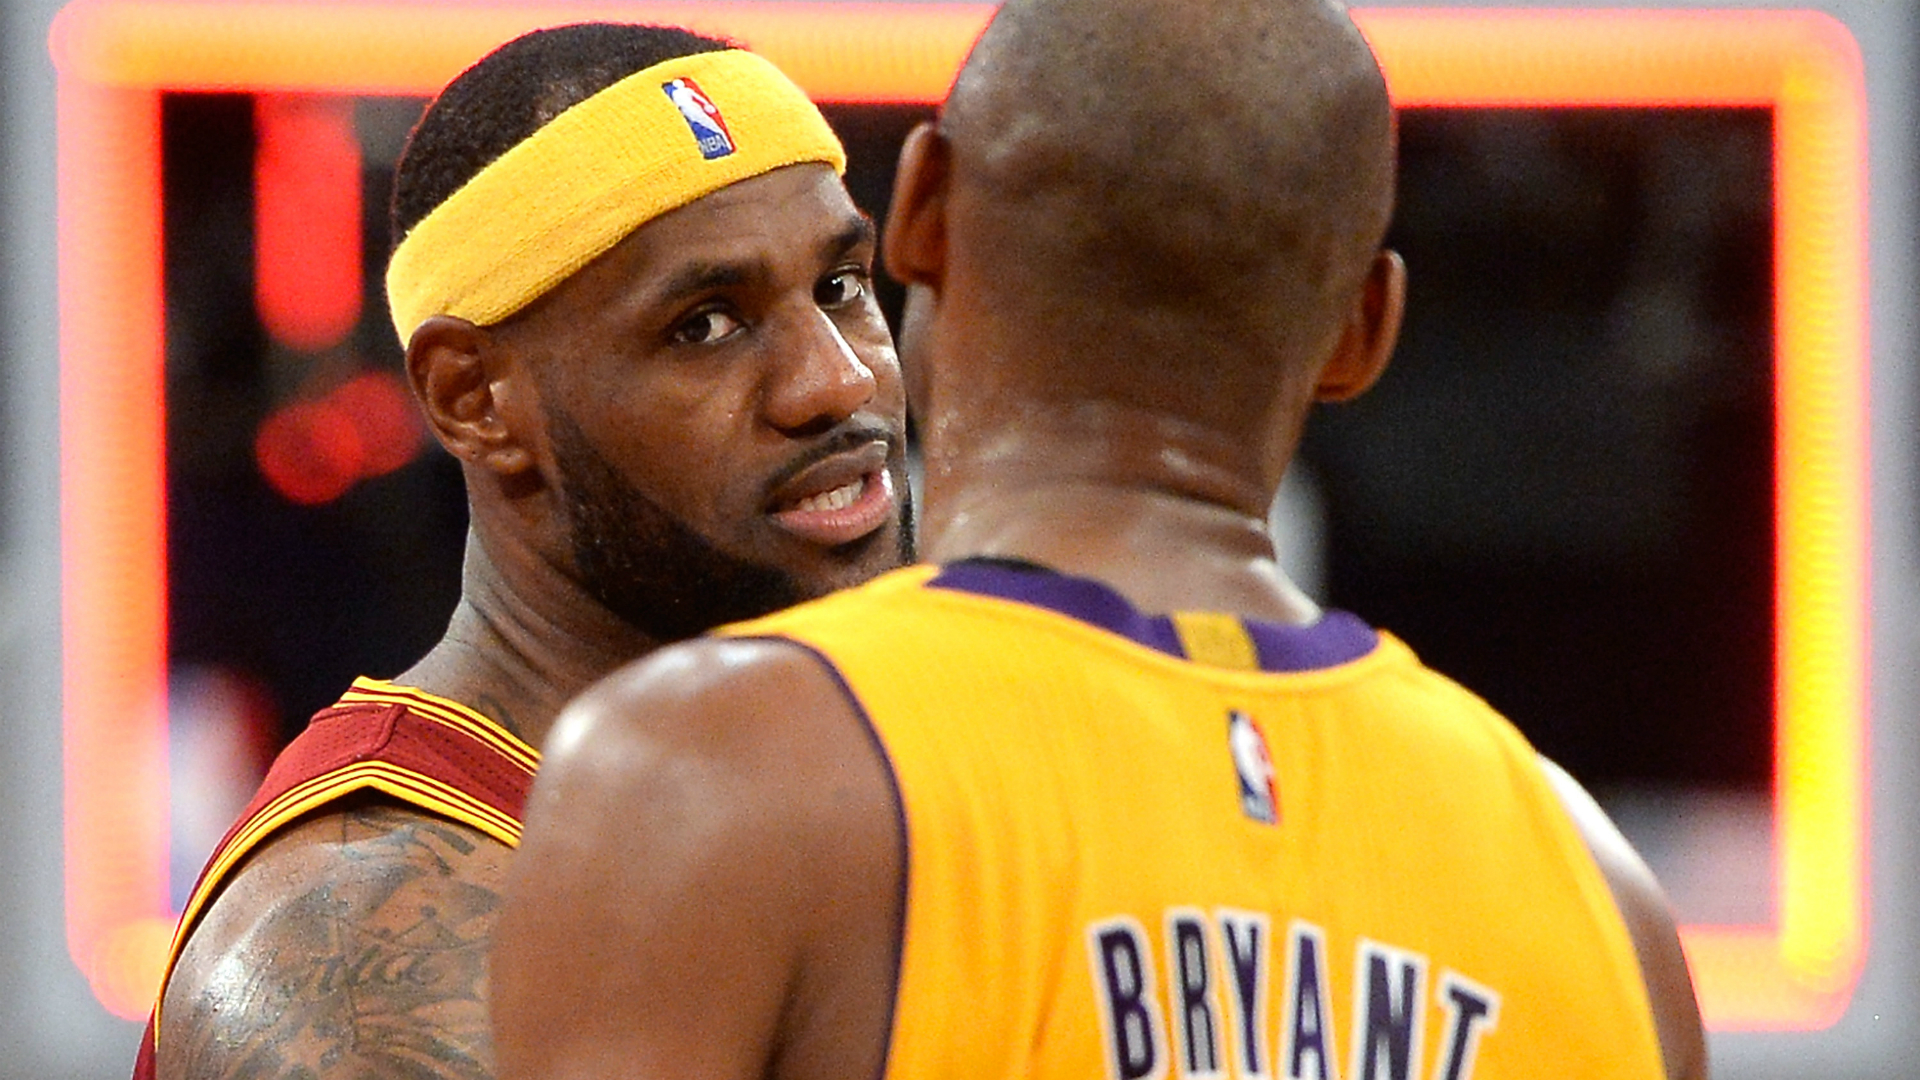 Kobe bryant can retire peacefully after punking lebron james one kobe bryant can retire peacefully after punking lebron james one last time nba sporting news voltagebd Choice Image